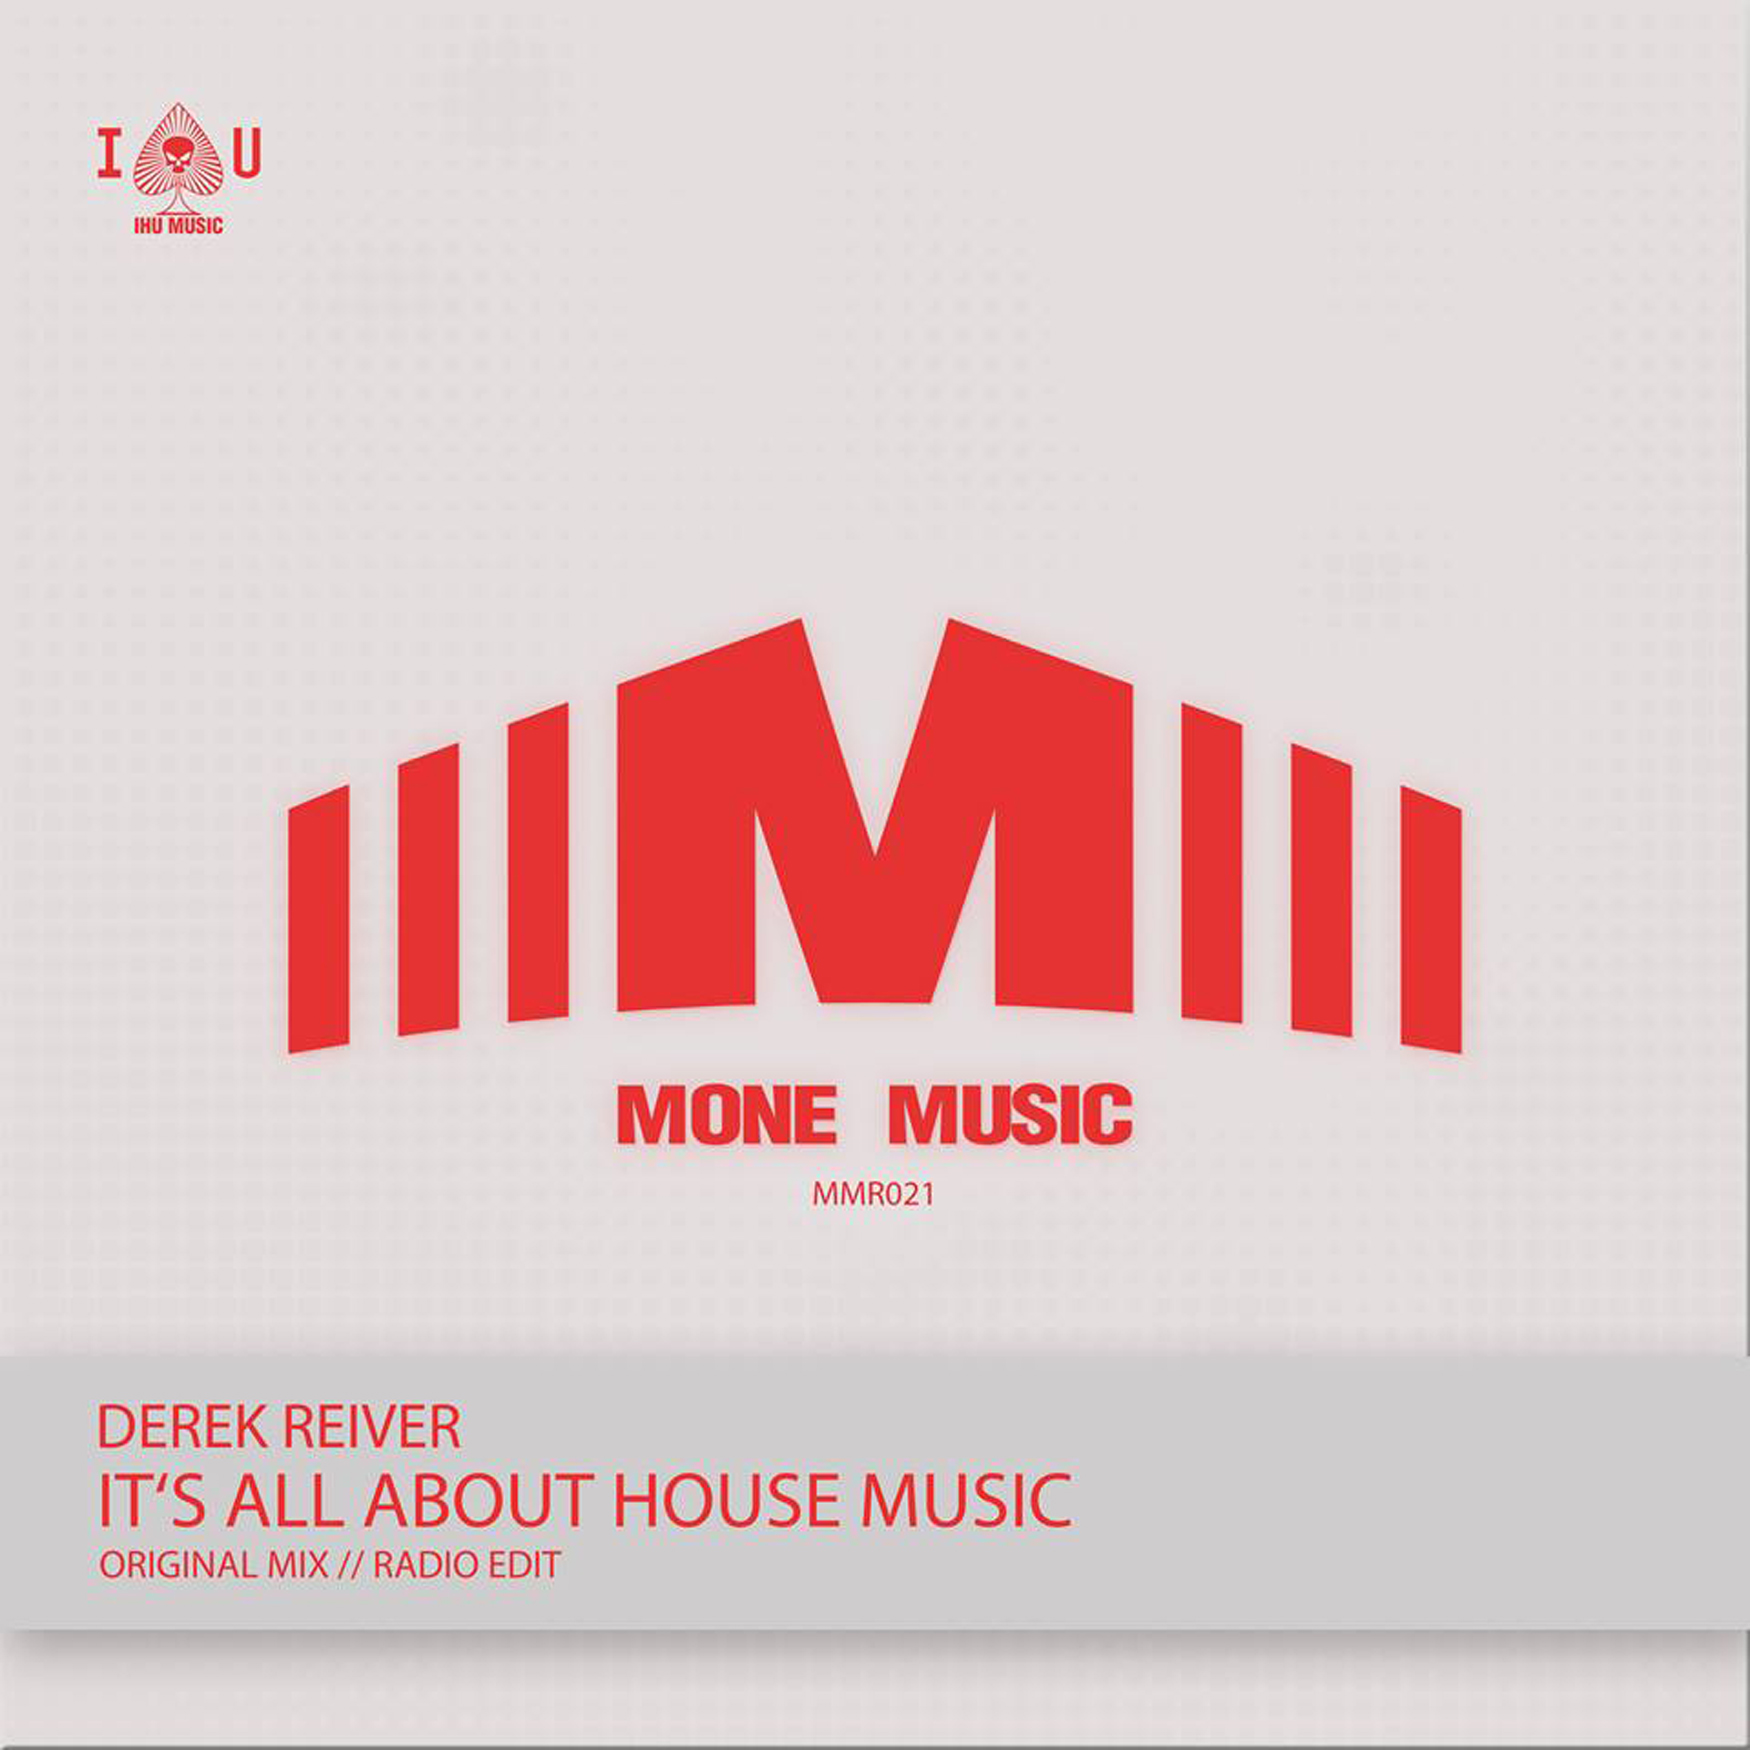 Derek Reiver - It's All About House Music